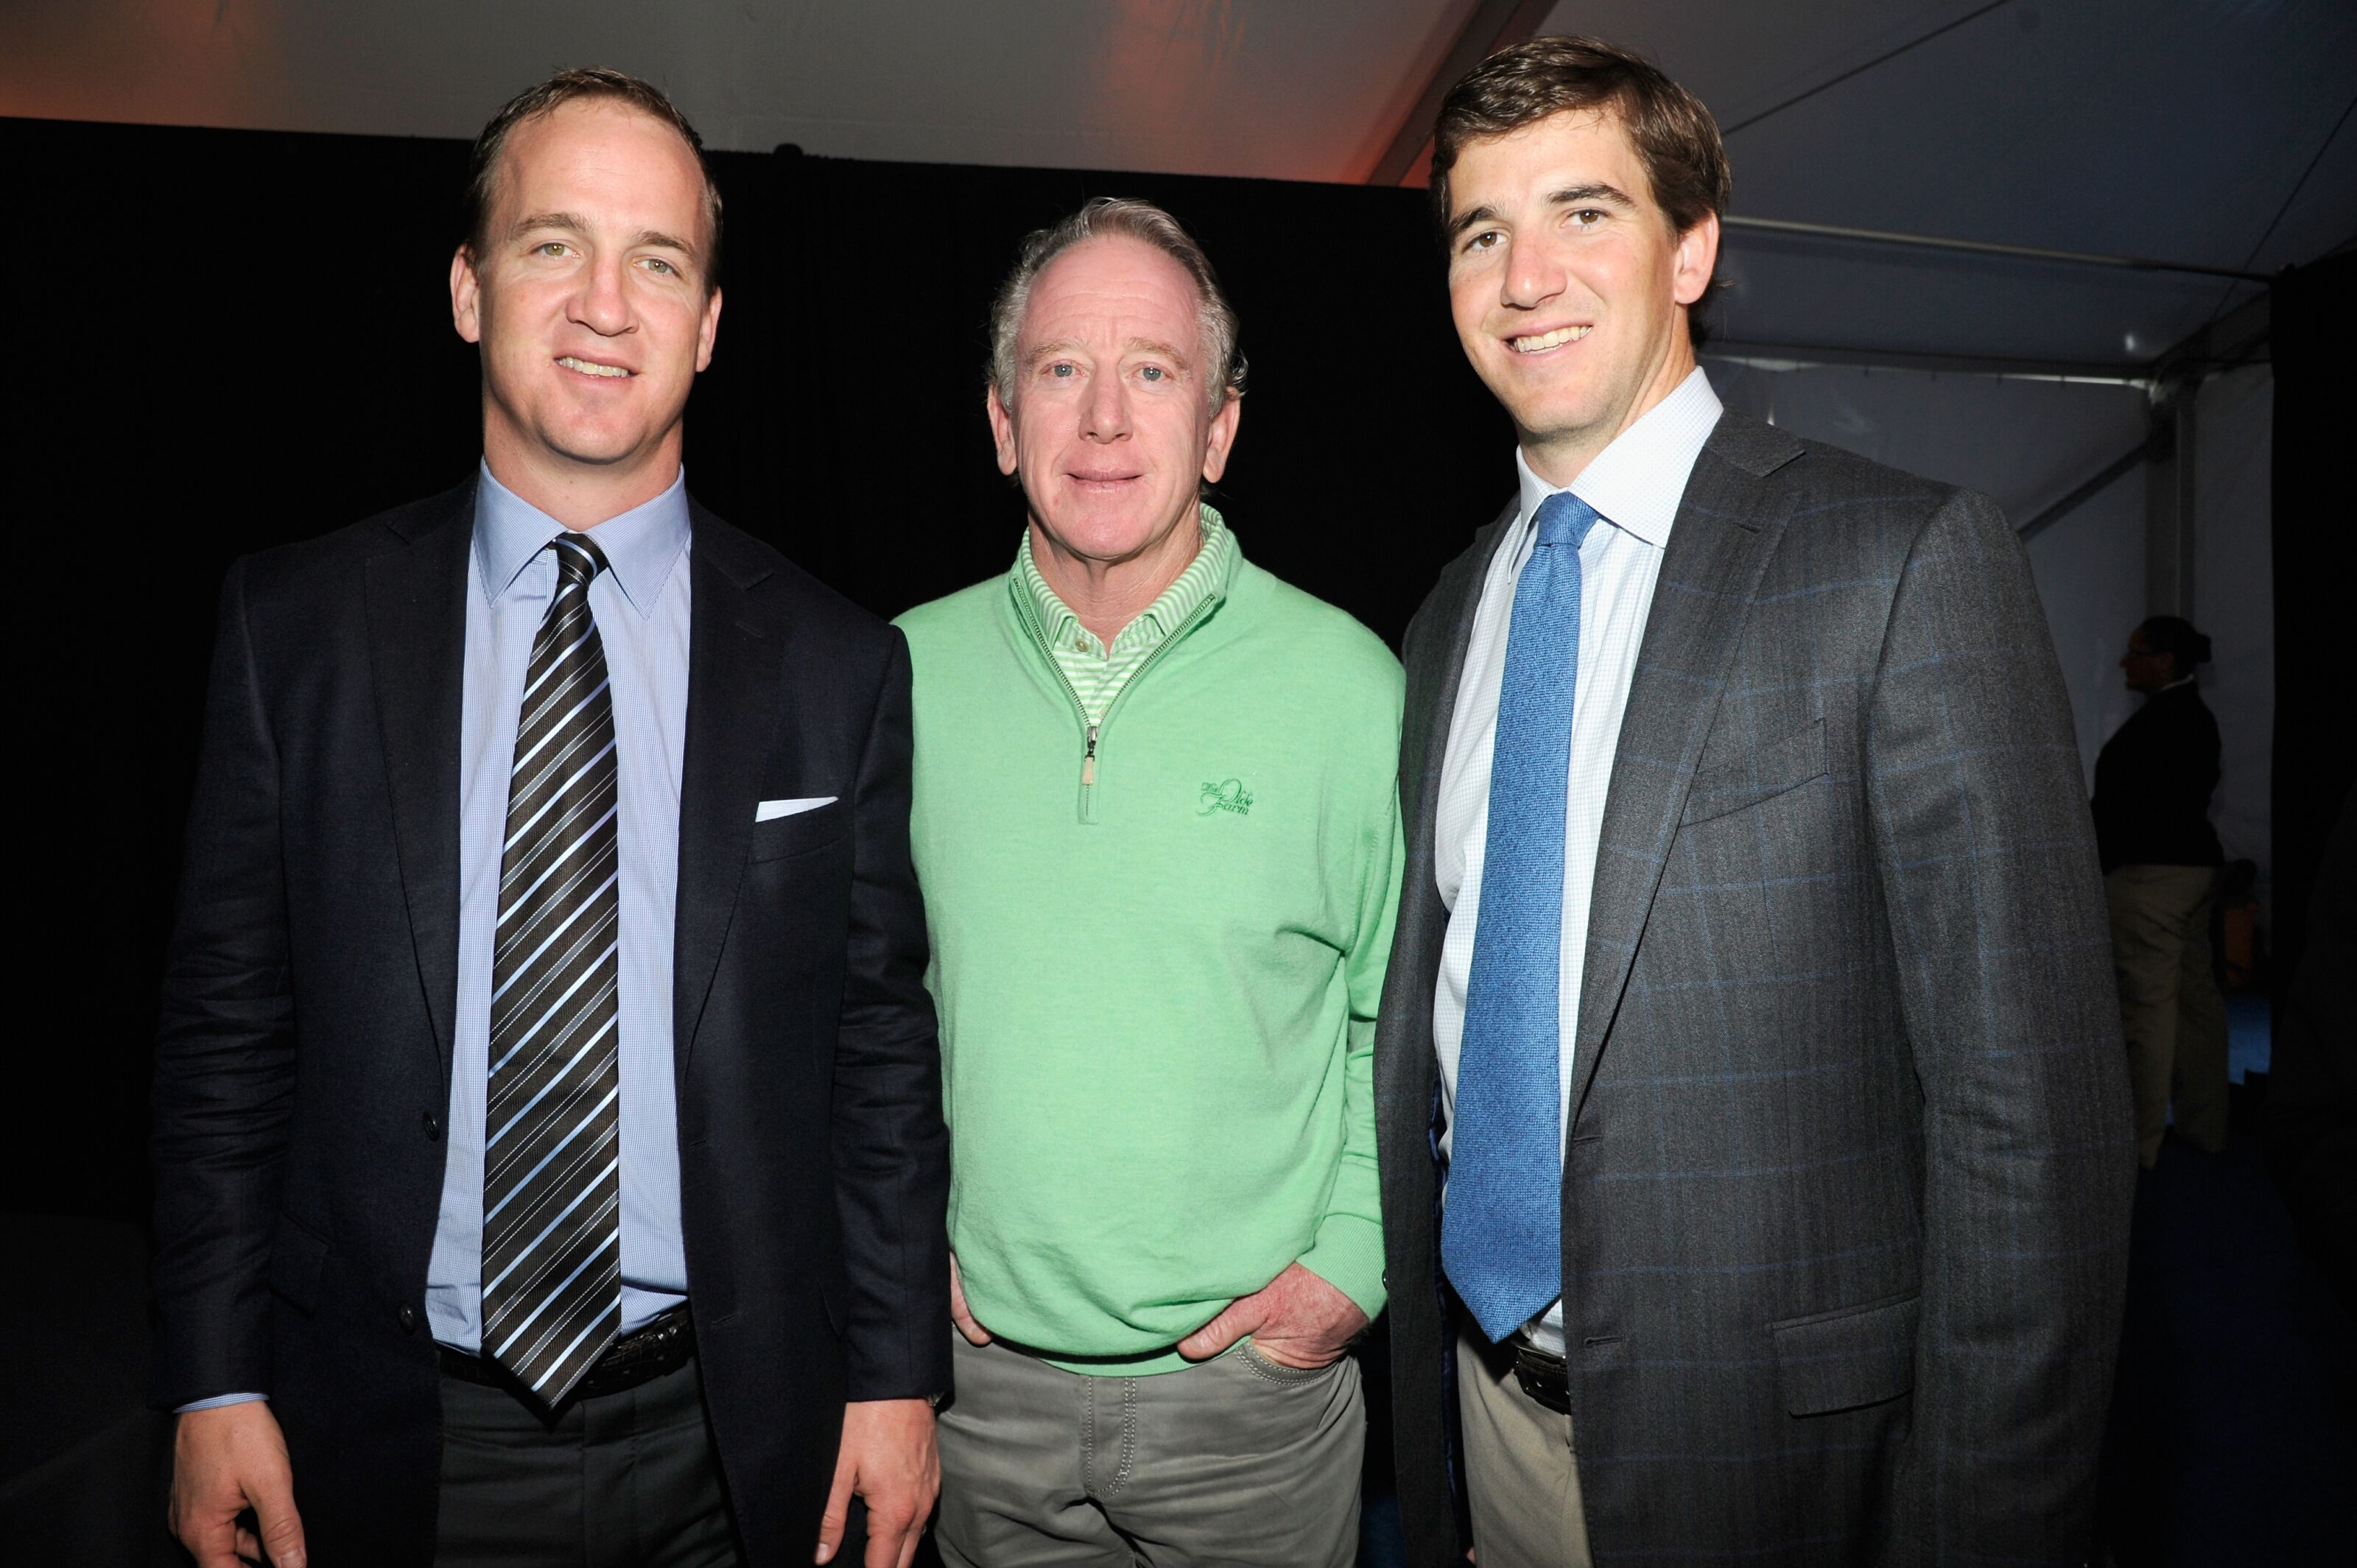 Arch Manning looks like next in family quarterback lineage